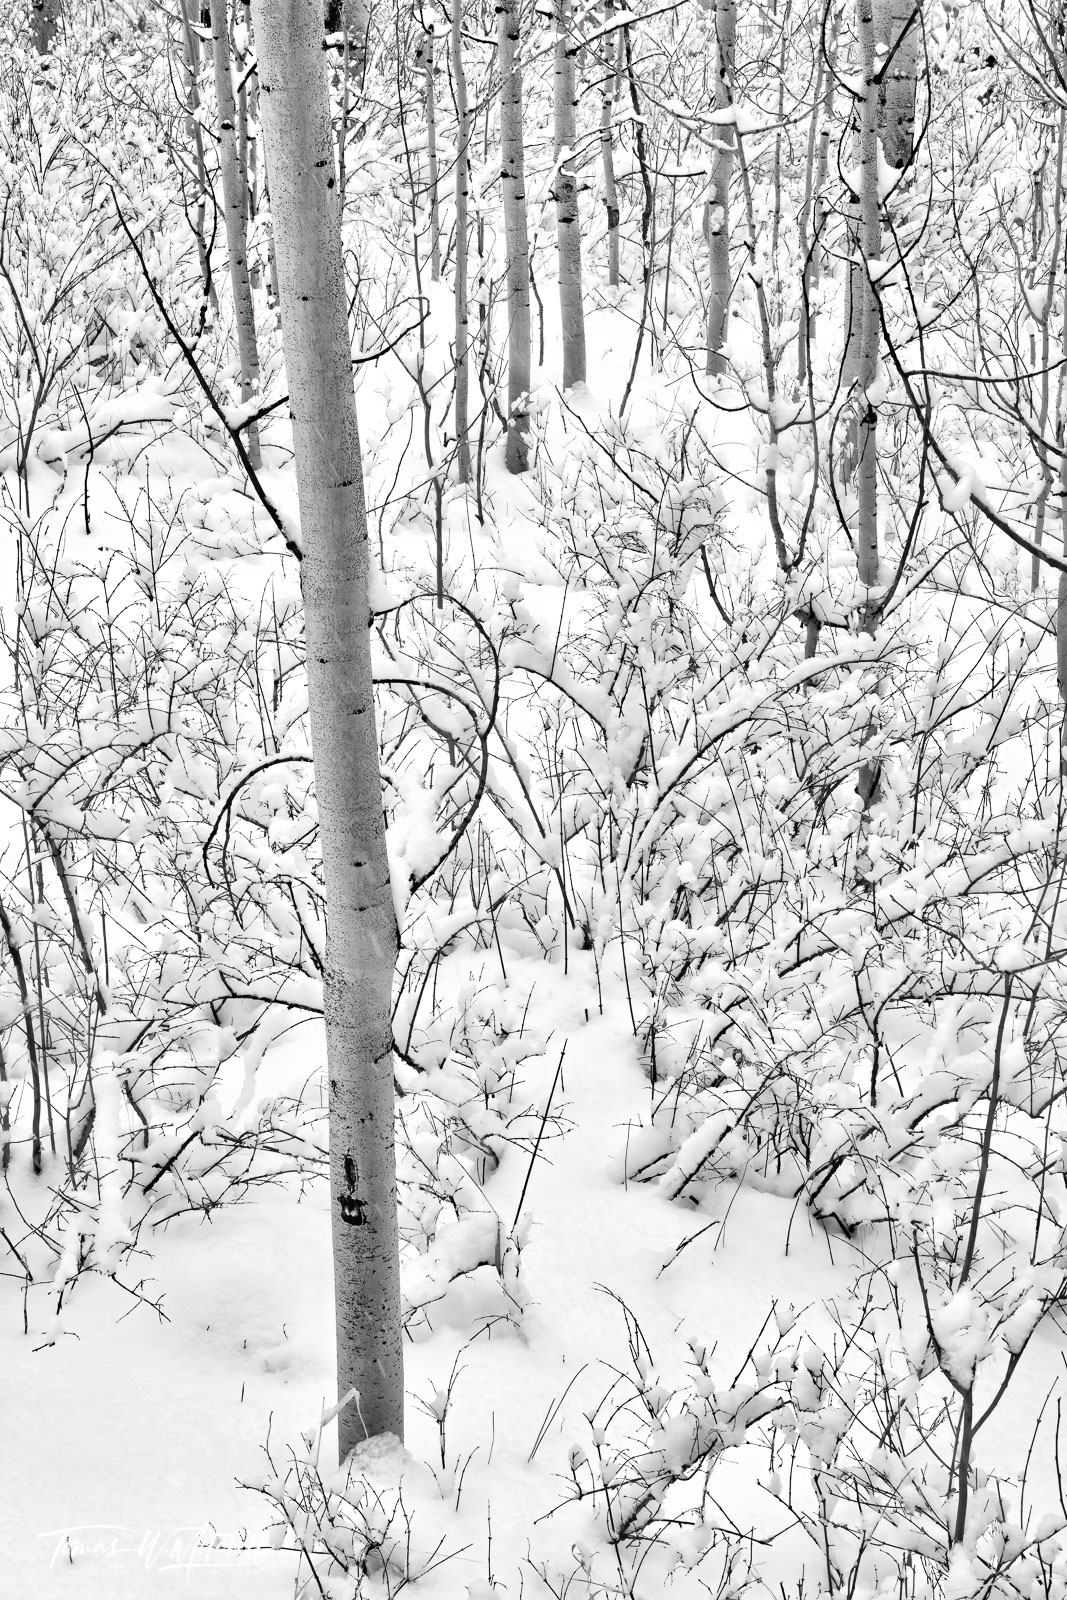 UINTA-WASATCH-CACHE NATIONAL FOREST, UTAH, limited edition, fine art, prints, winter, snow, trees, photo